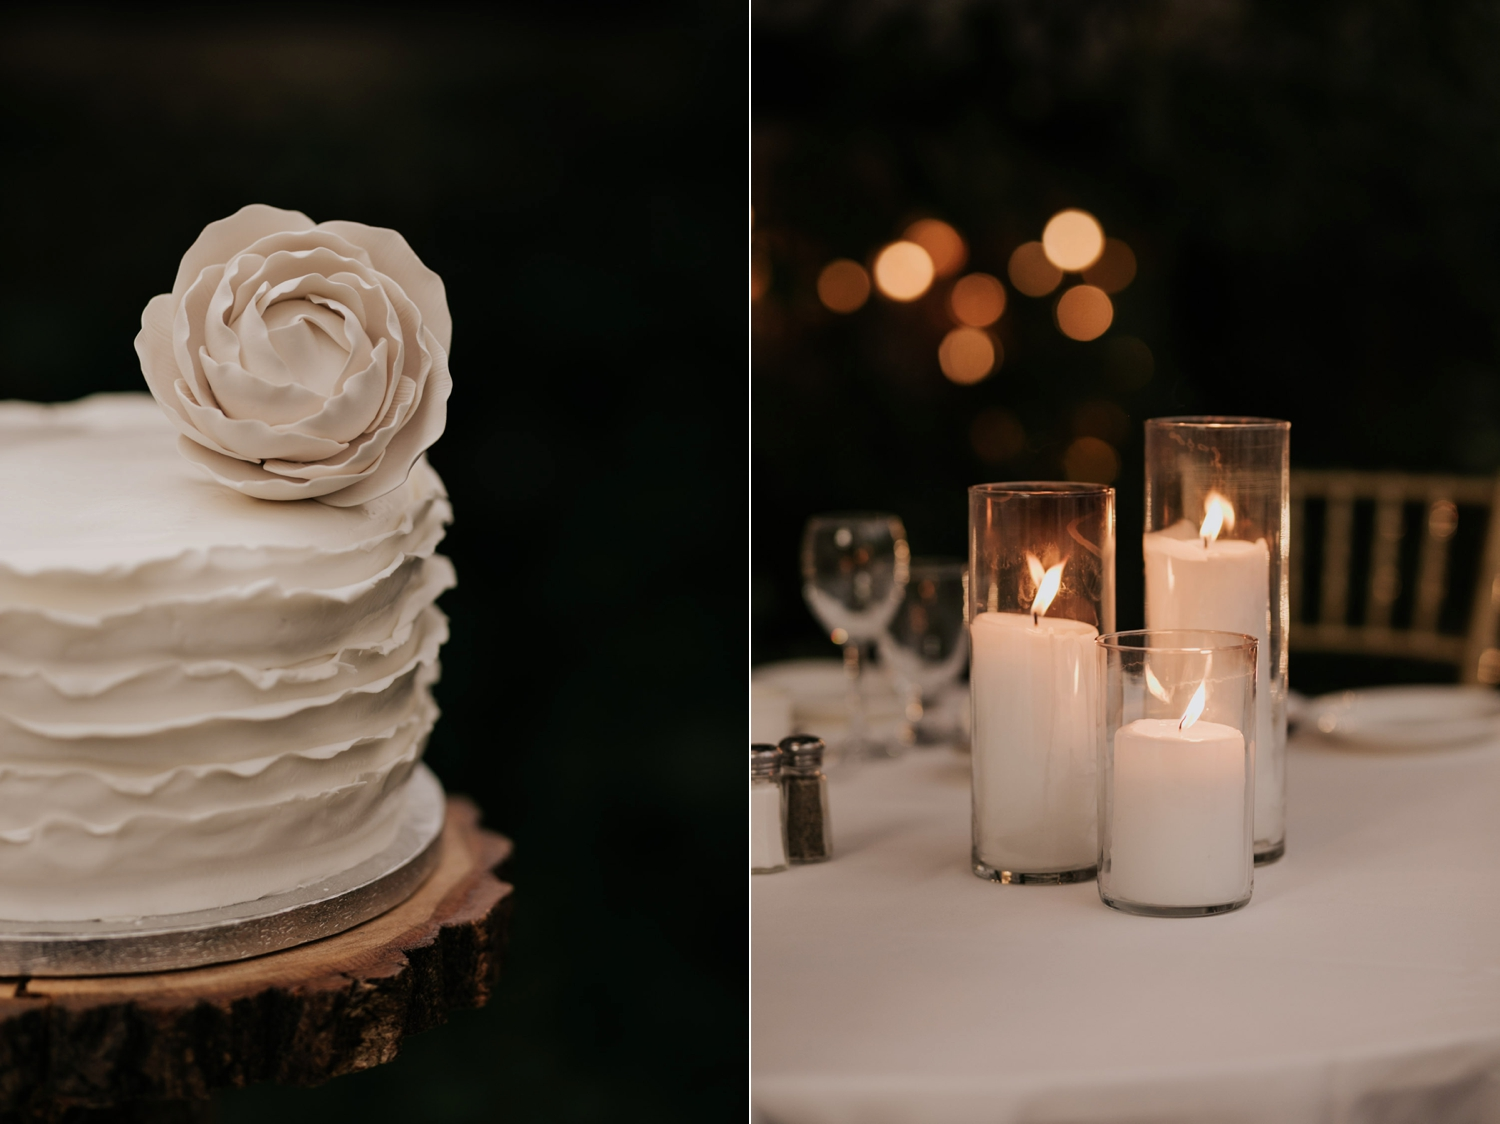 Classic trending plain white wedding cake with white rose on the top at Madsen's Greenhouse wedding venue in Newmarket near Toronto